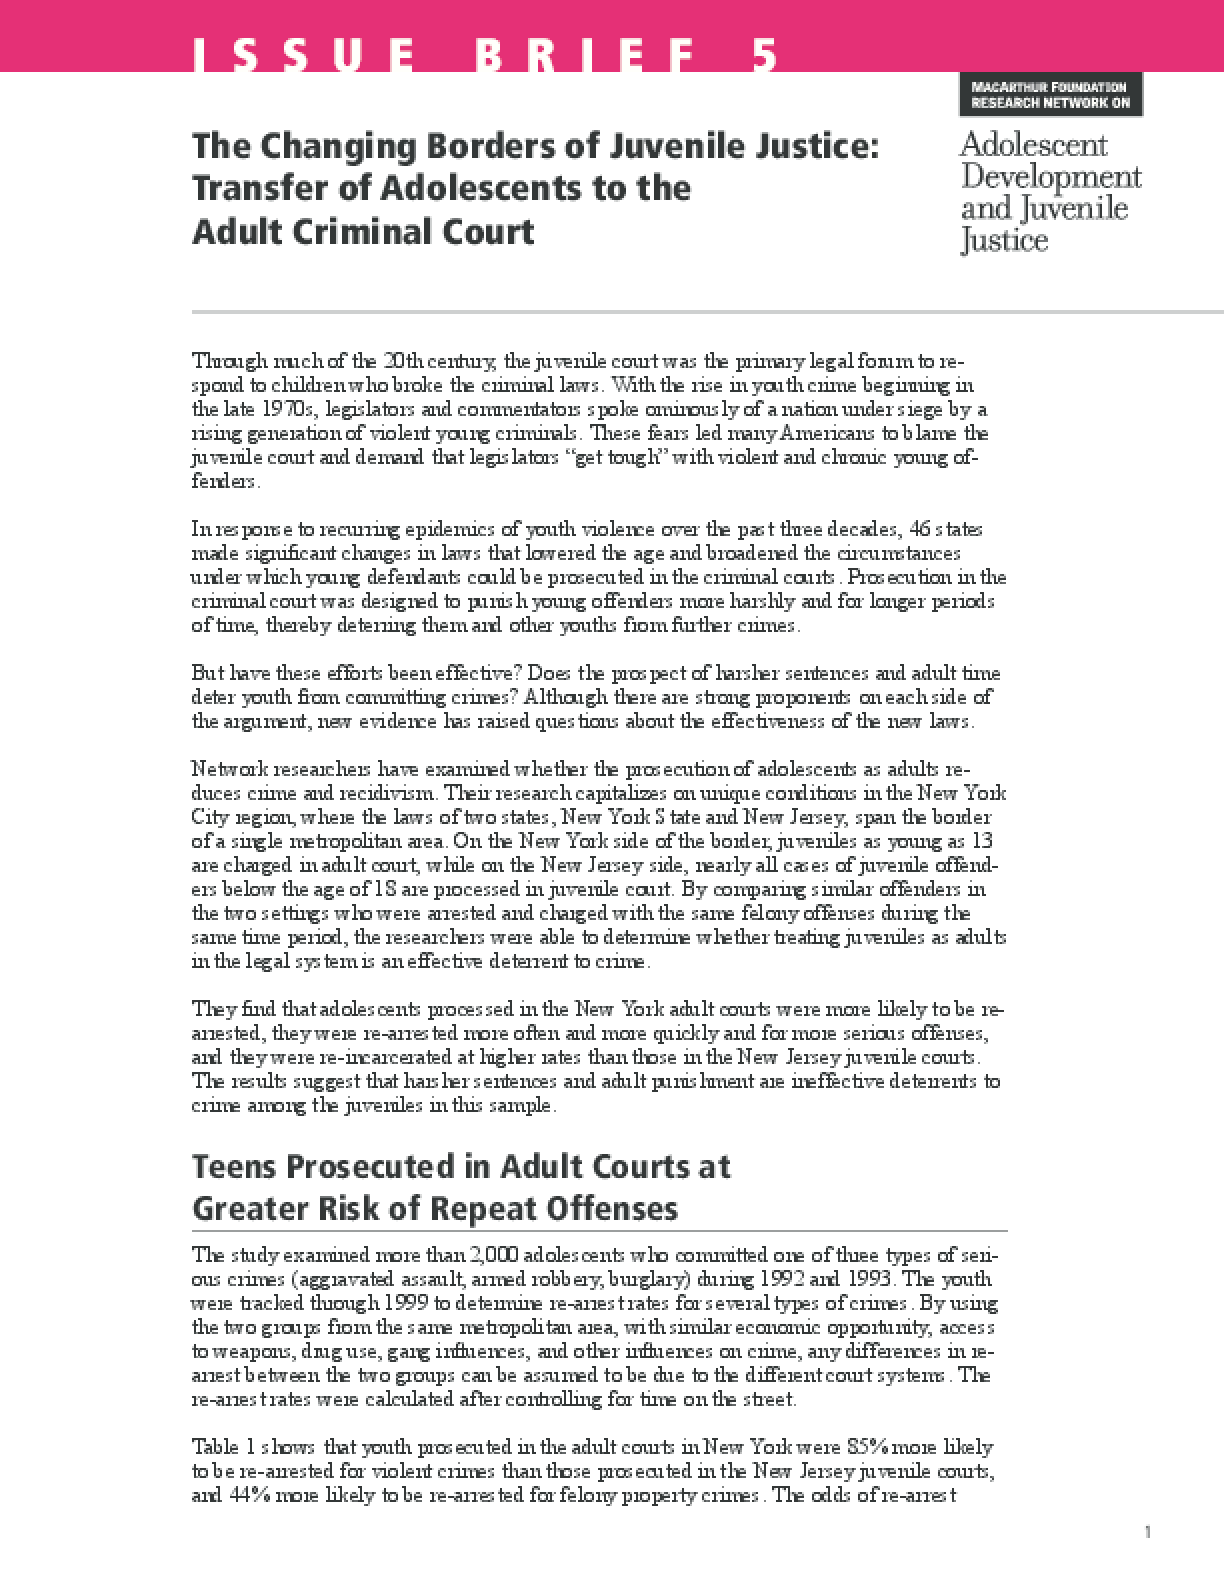 The Changing Borders of Juvenile Justice: Transfer of Adolescents to the Adult Criminal Court